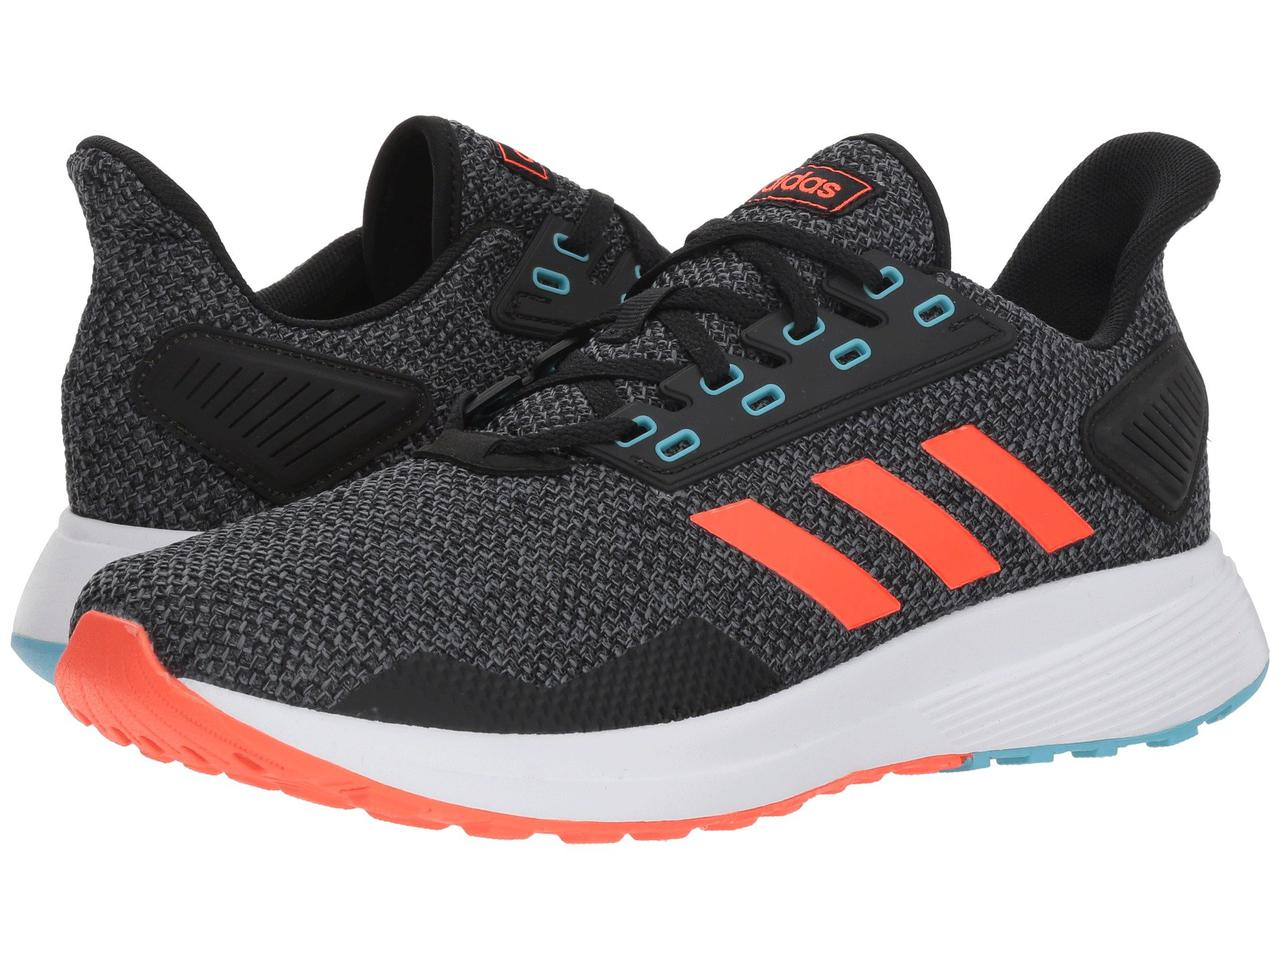 63104983cd2c Кроссовки Кеды (Оригинал) adidas Running Duramo 9 Black Solar Red Grey